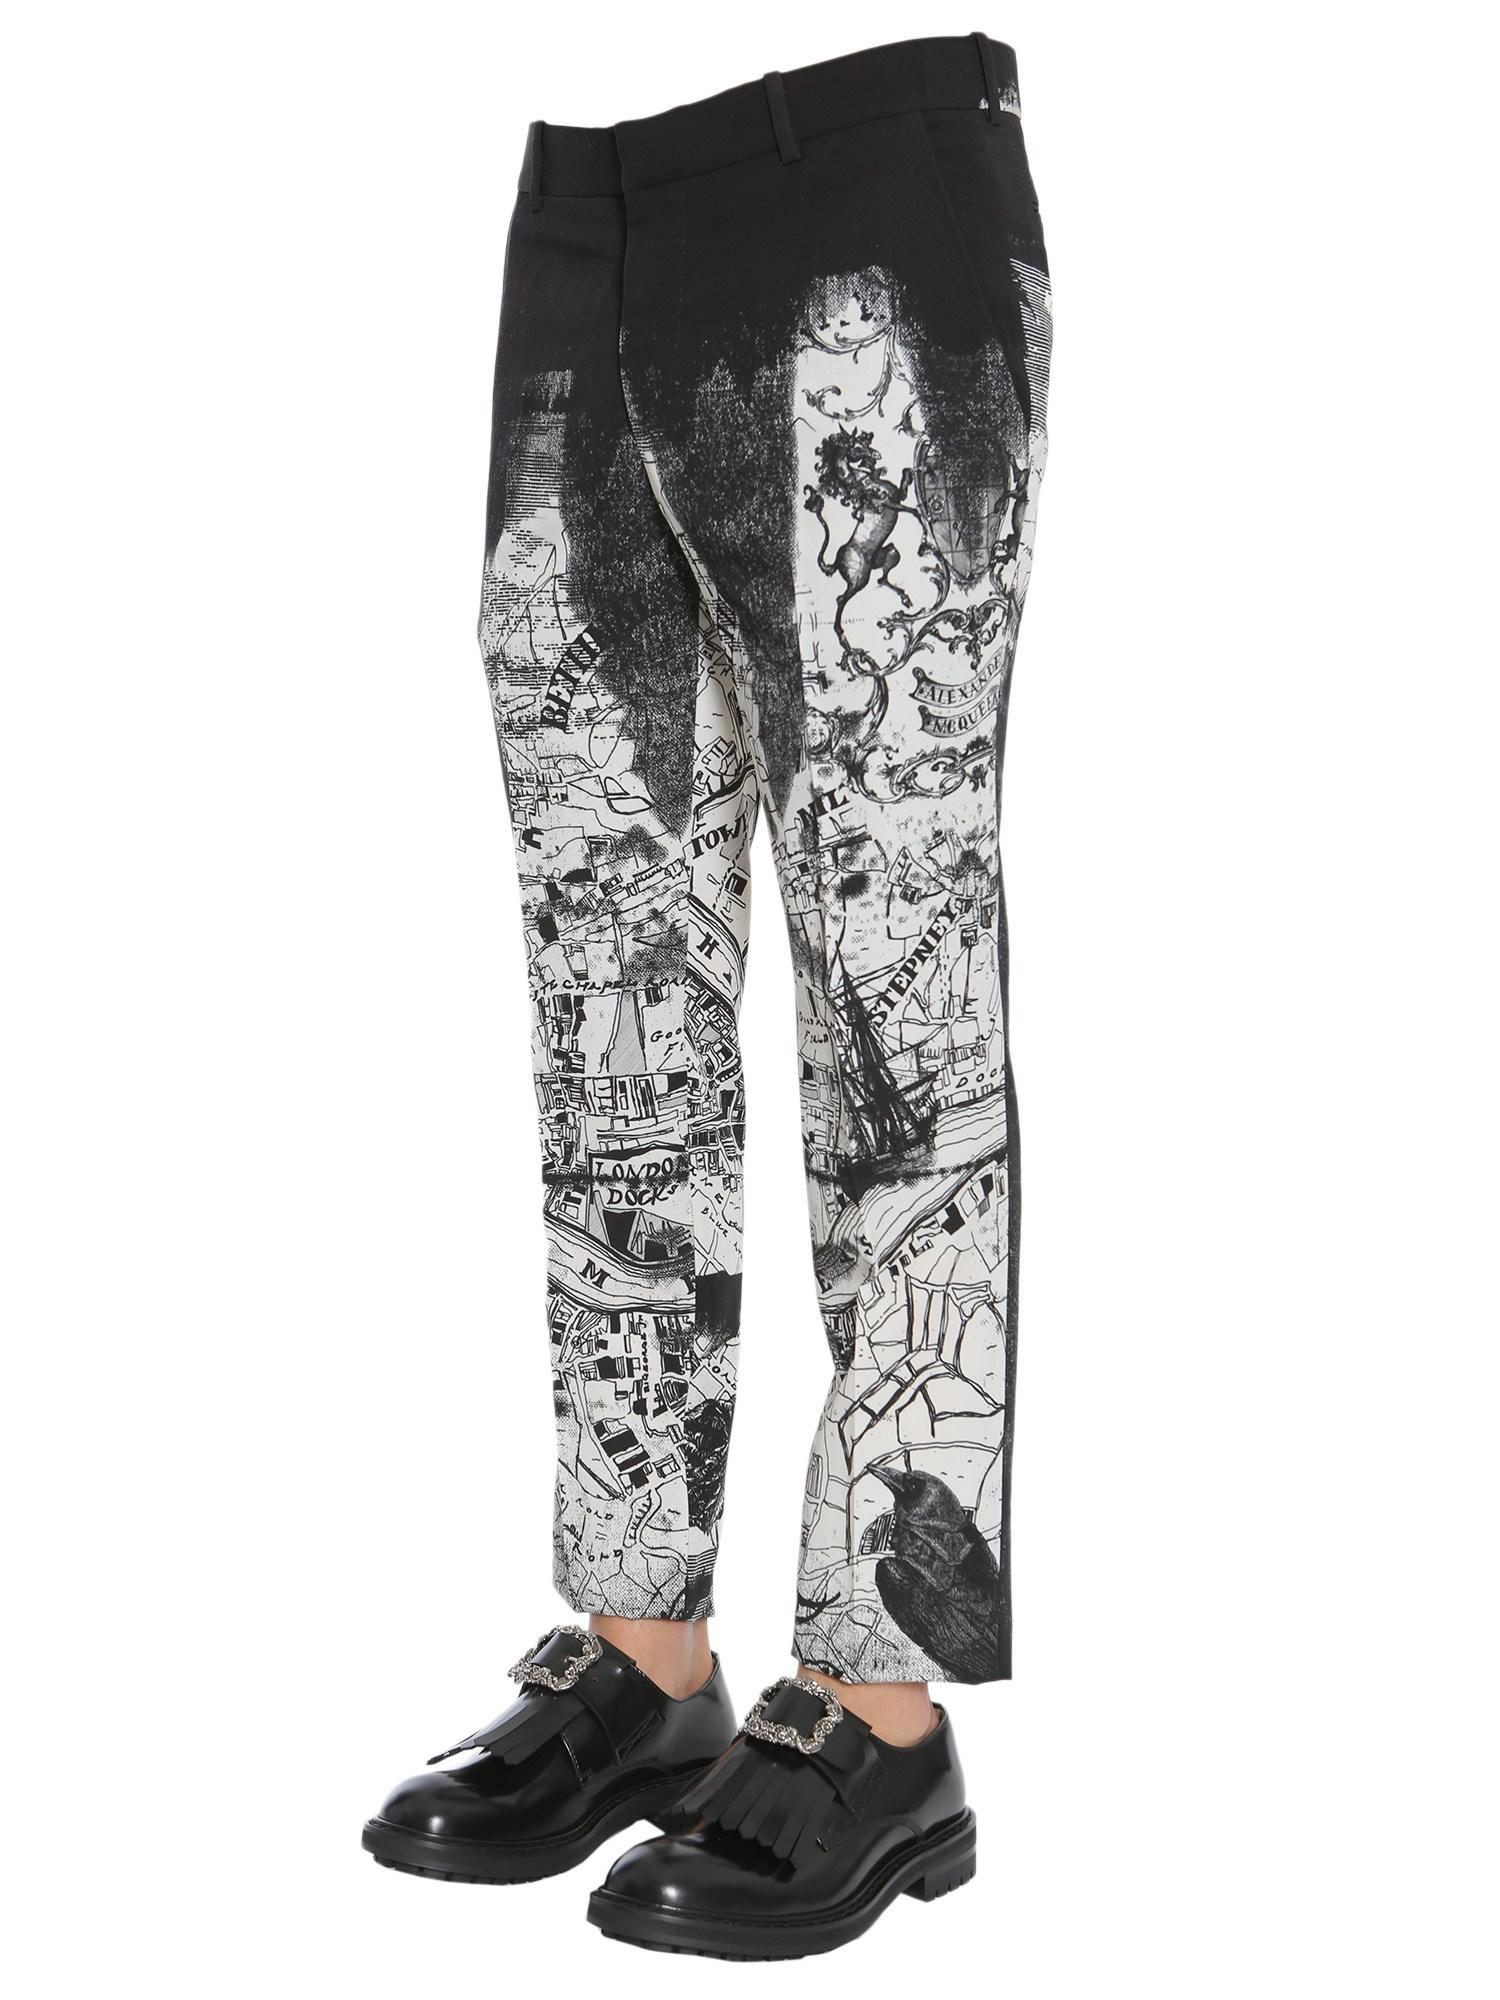 Alexander McQueen Wool Printed Tailored Trousers in Ivory (White) for Men